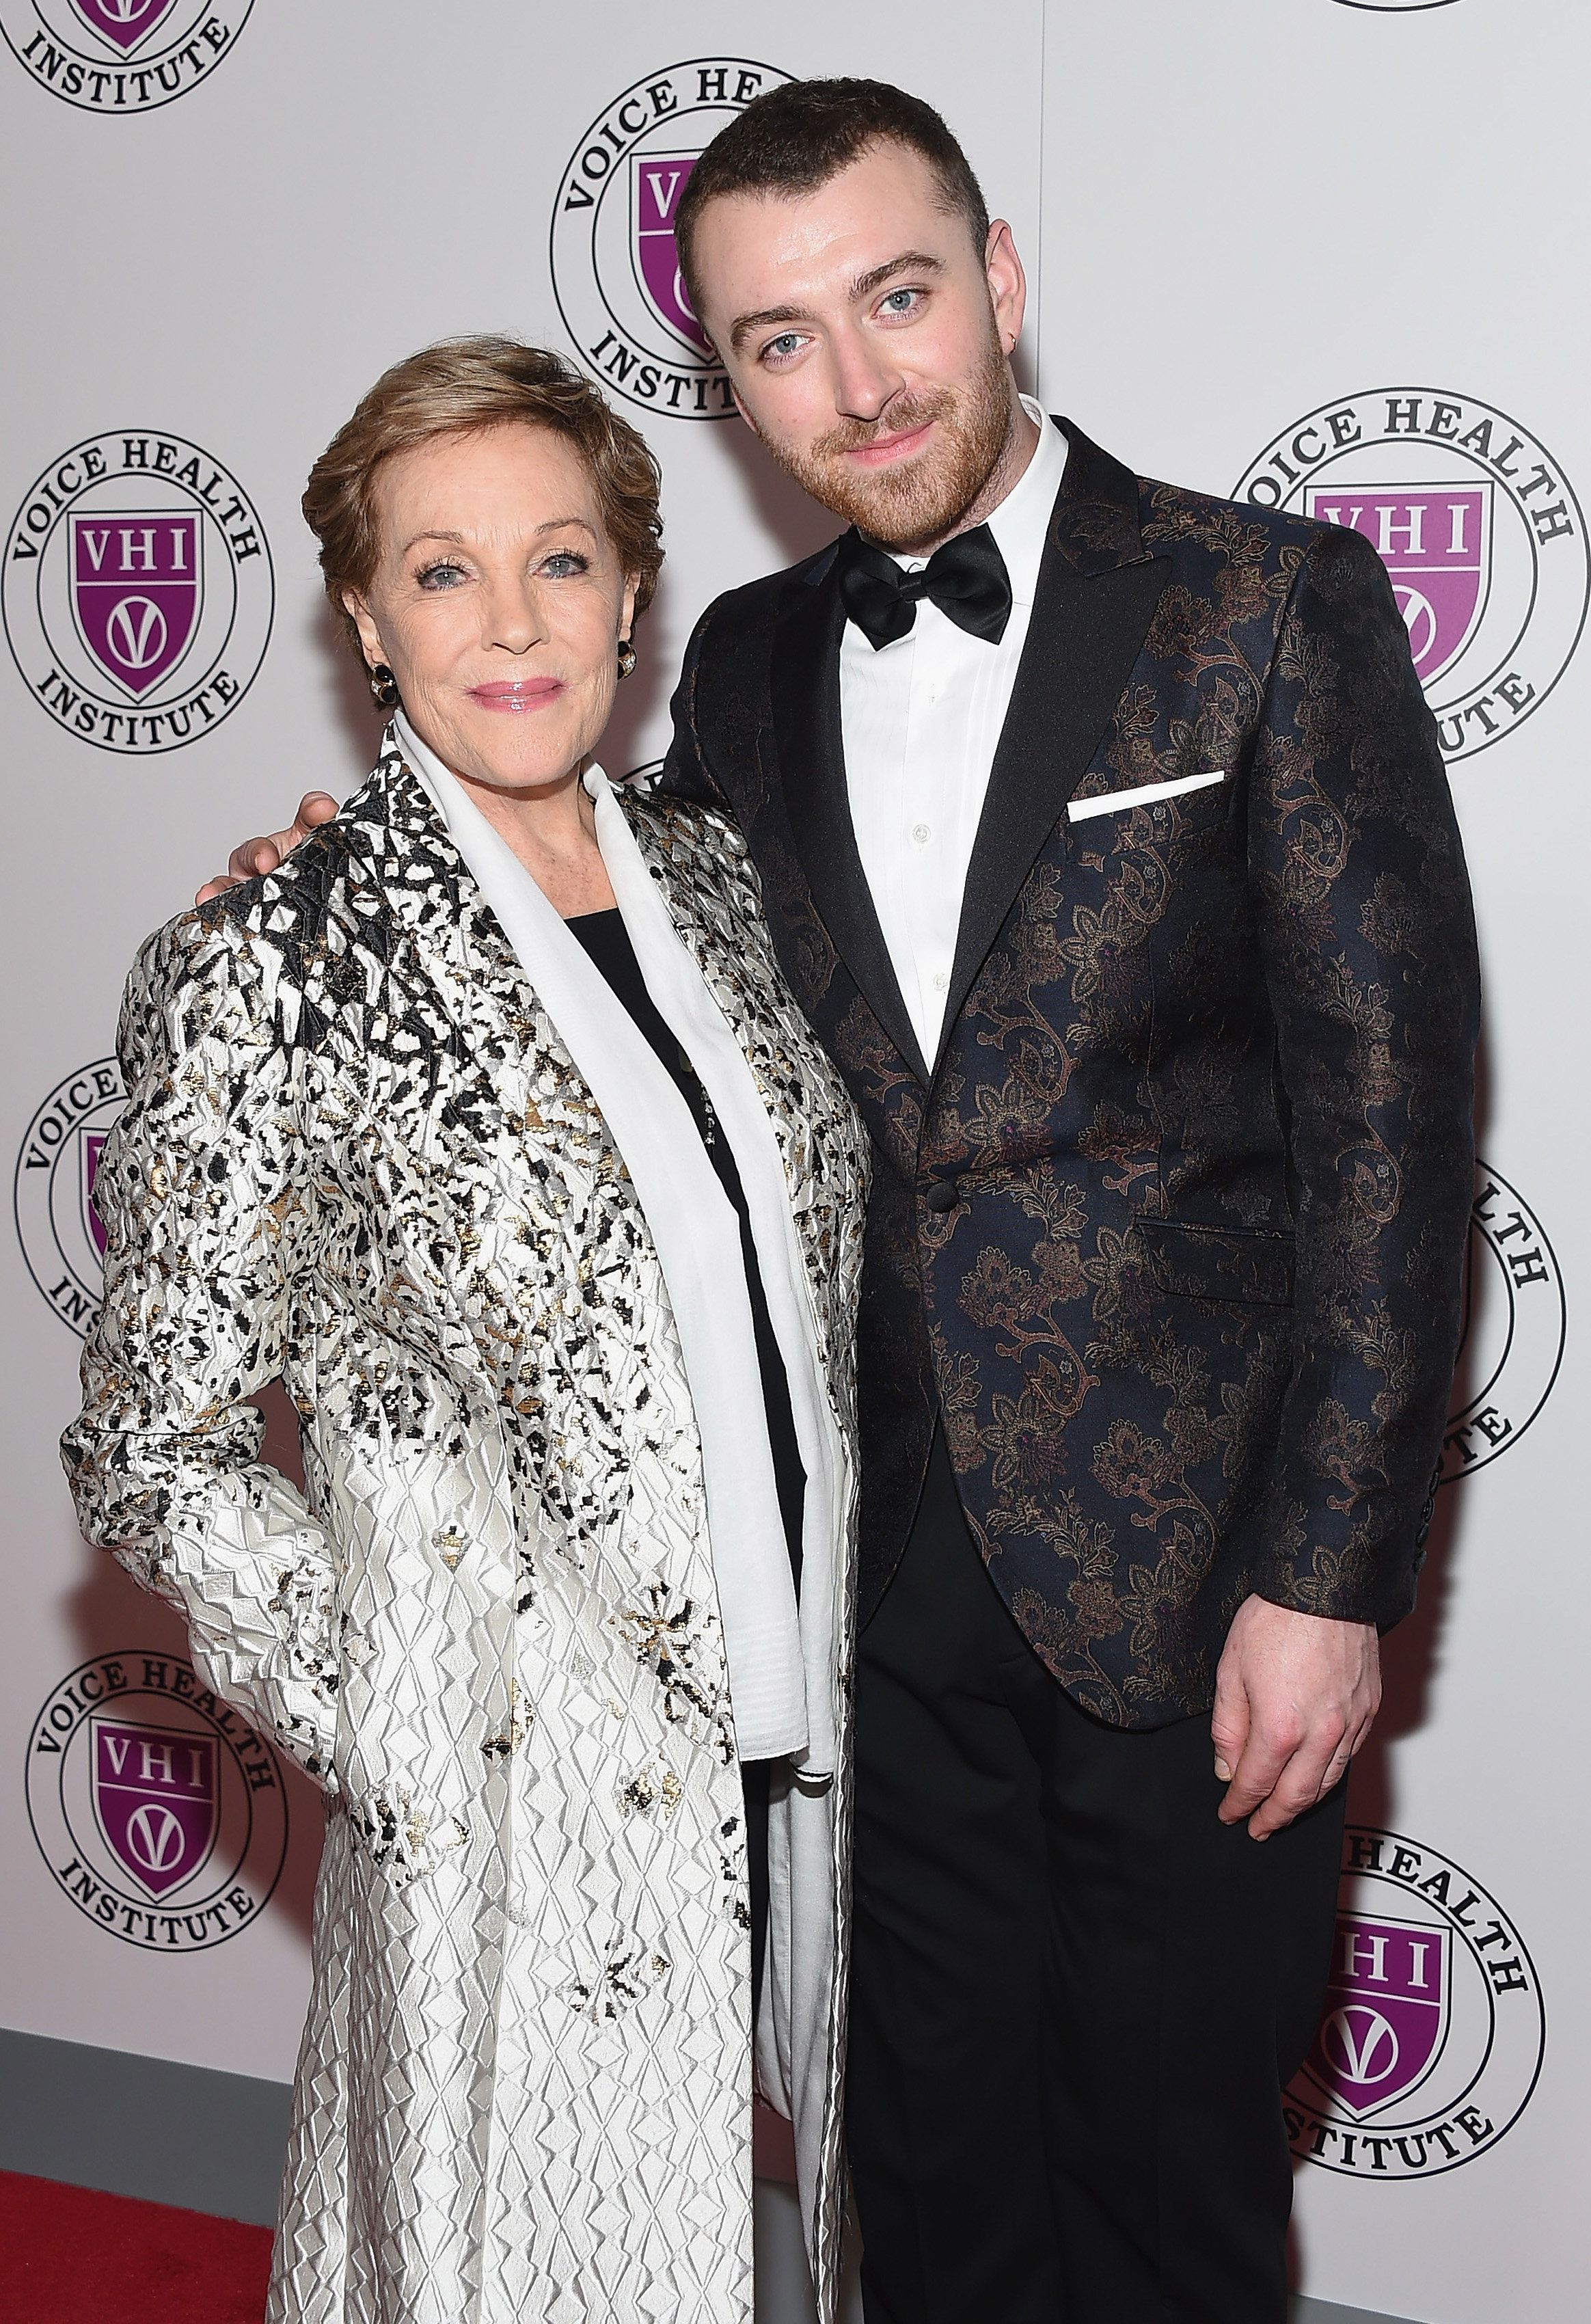 NEW YORK, OH - MARCH 05:  Event honoree Julie Andrews and singer Sam Smith attend the 'Raise Your Voice' concert honoring Julie Andrews at Alice Tully Hall, Lincoln Center on March 5, 2018 in New York City.  (Photo by Gary Gershoff/WireImage)